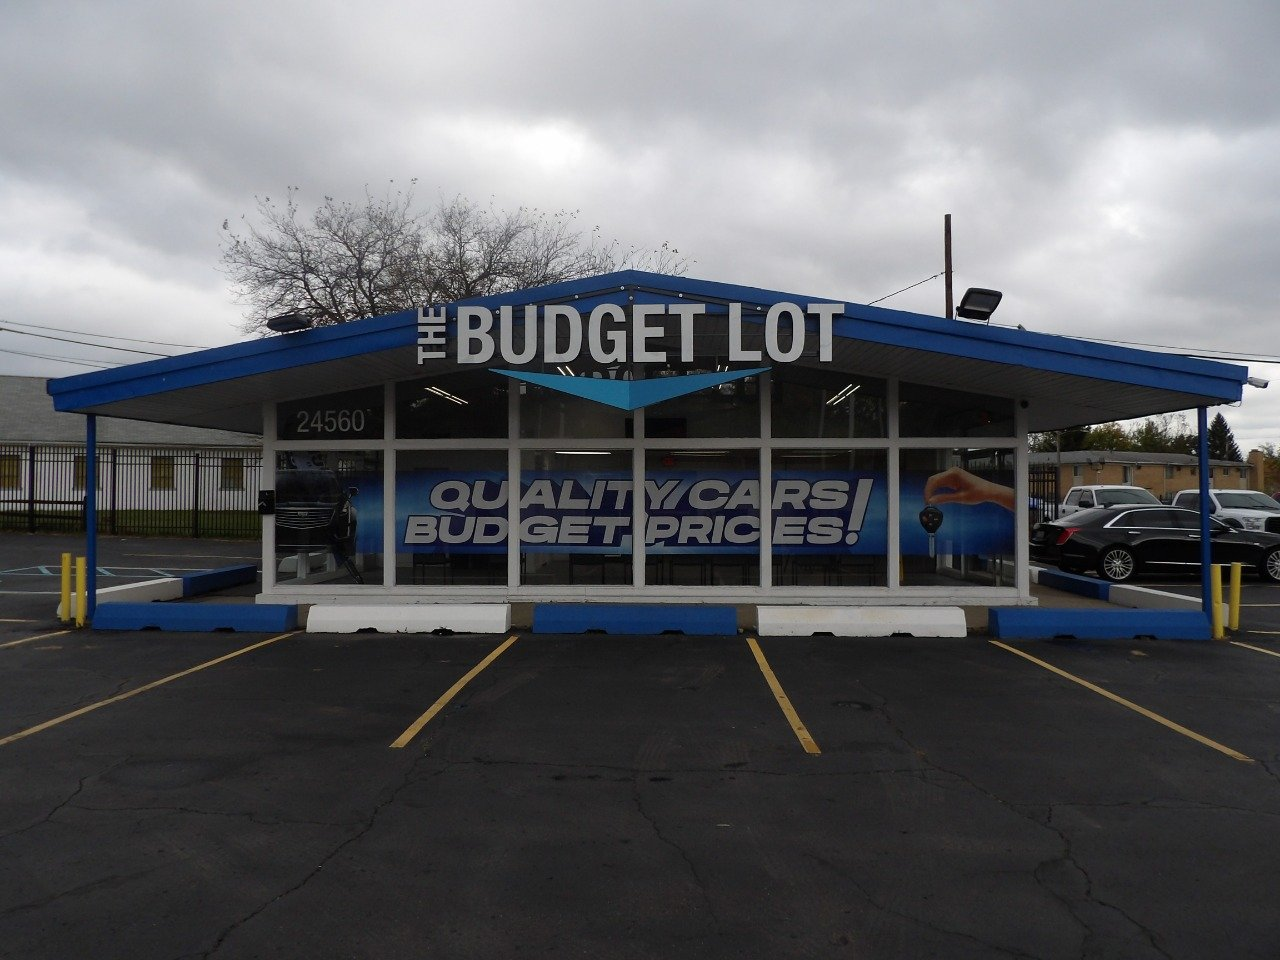 THE BUDGET LOT